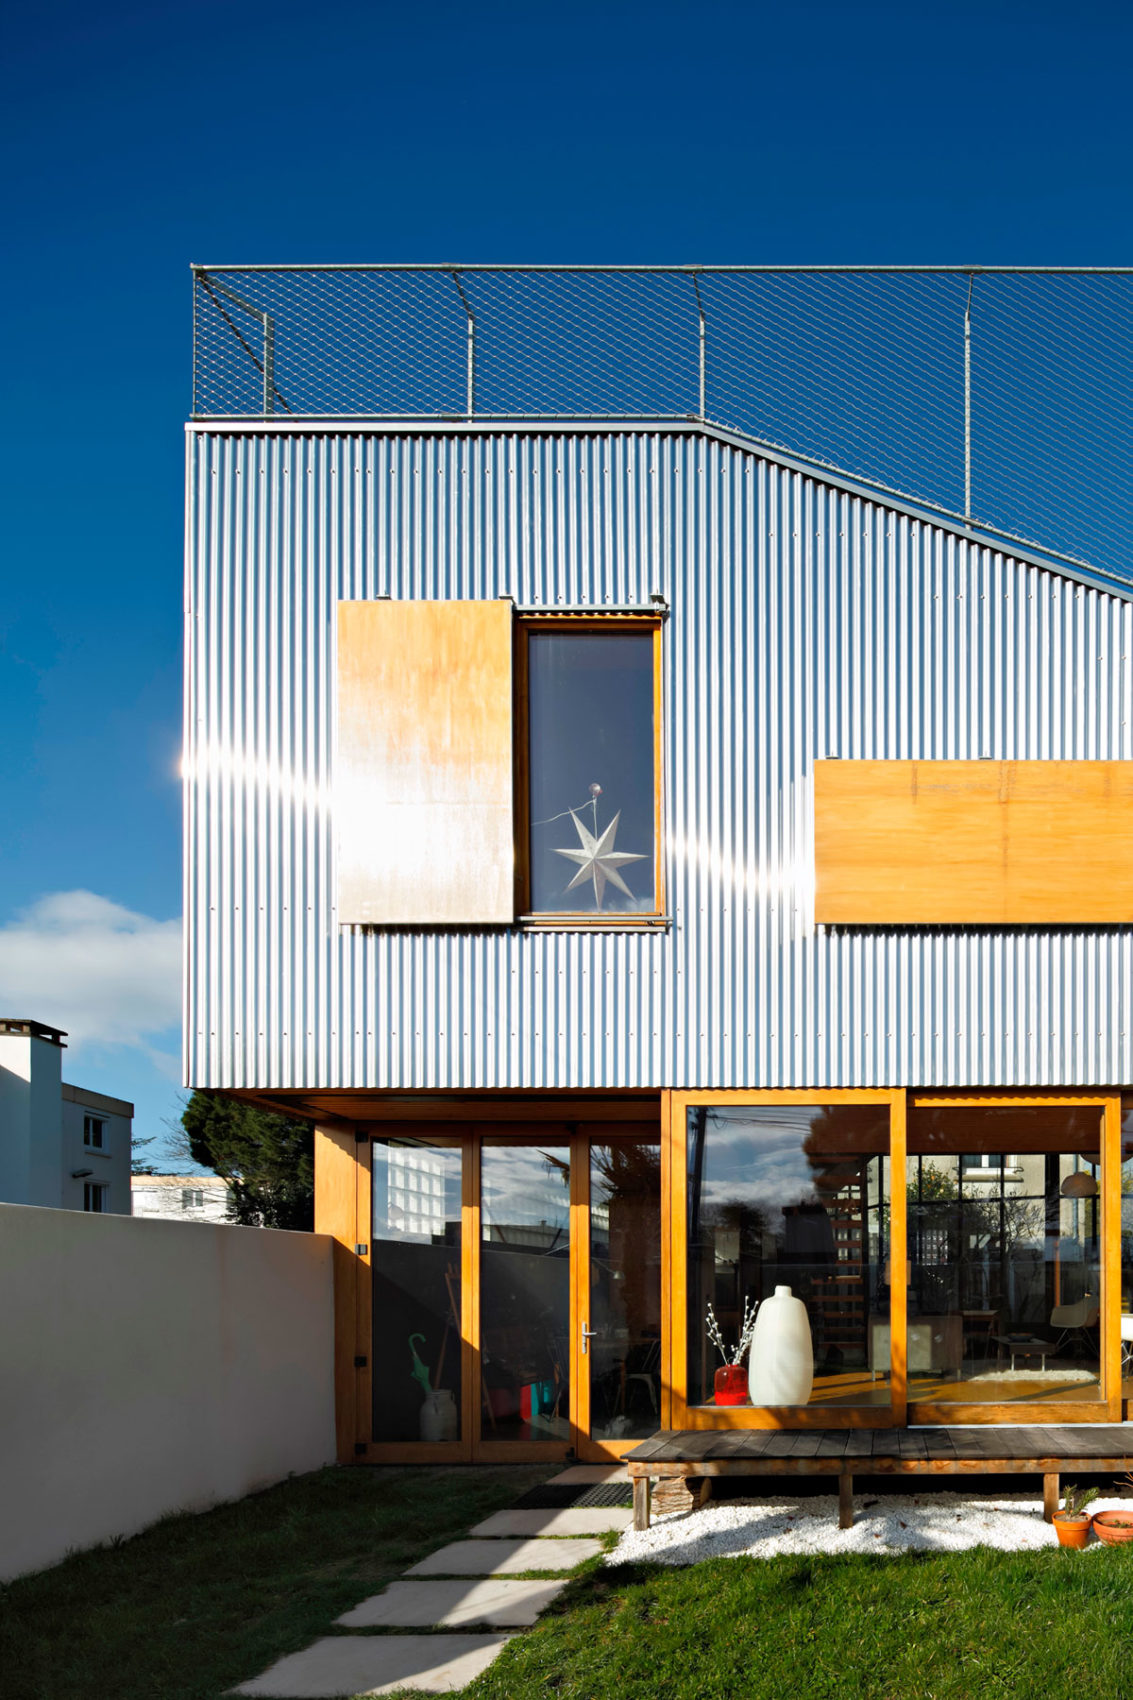 House Extension in Nantes by Mabire Reich Architects (9)